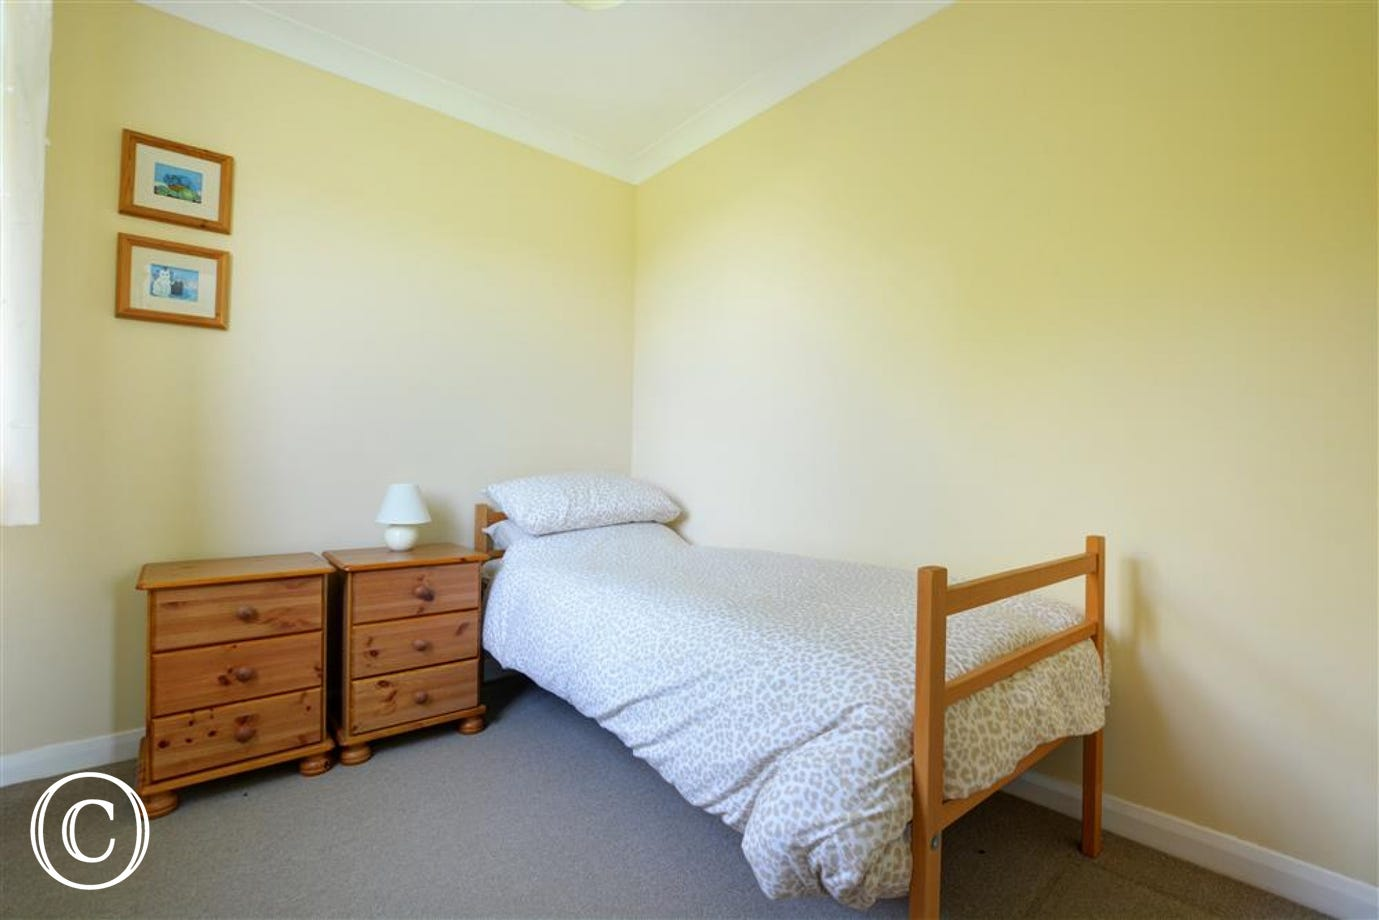 The third bedroom also has a single bed